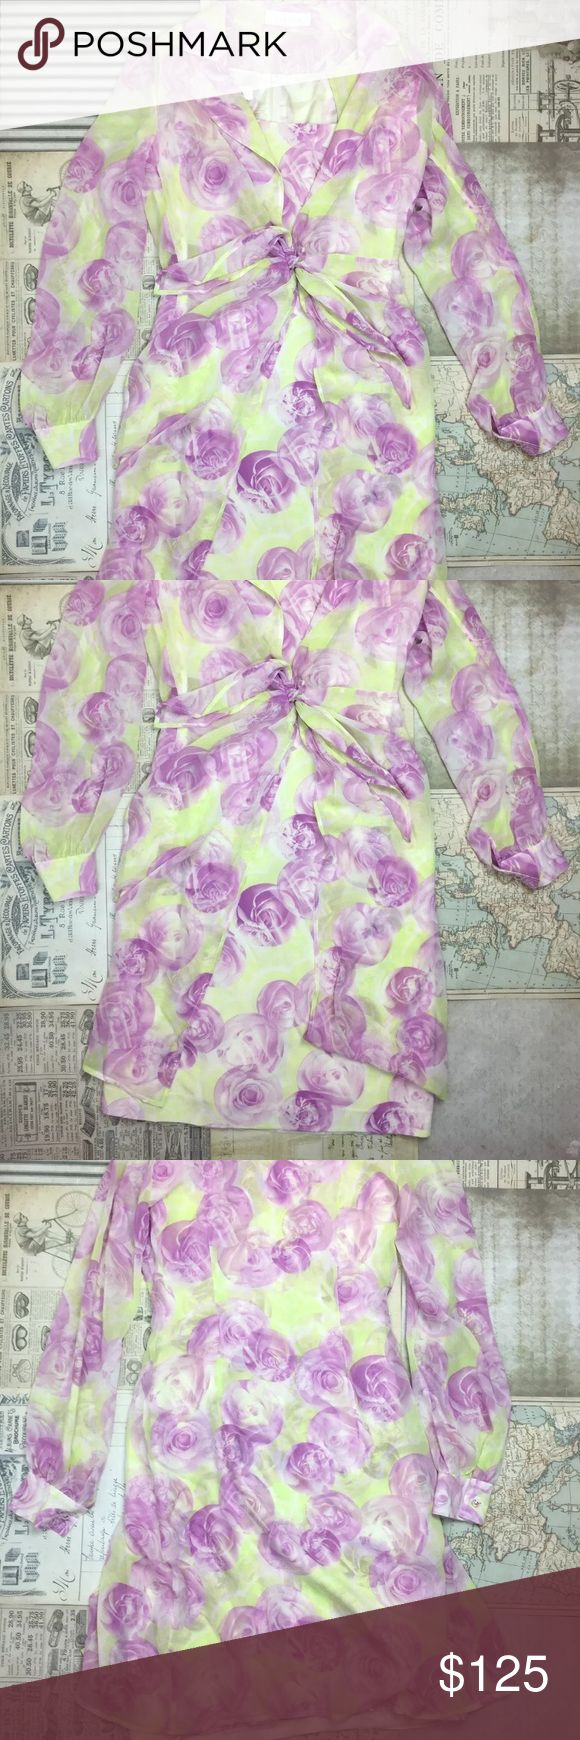 """Escada dress jacket 38 Two Piece Floral silk Sheer Dress is a size 38  Width: 18.5""""  Length: 37""""   Jacket is a size 36  Width: 20""""  Length: 40""""   There aren't any stains or rips Escada Dresses Midi"""